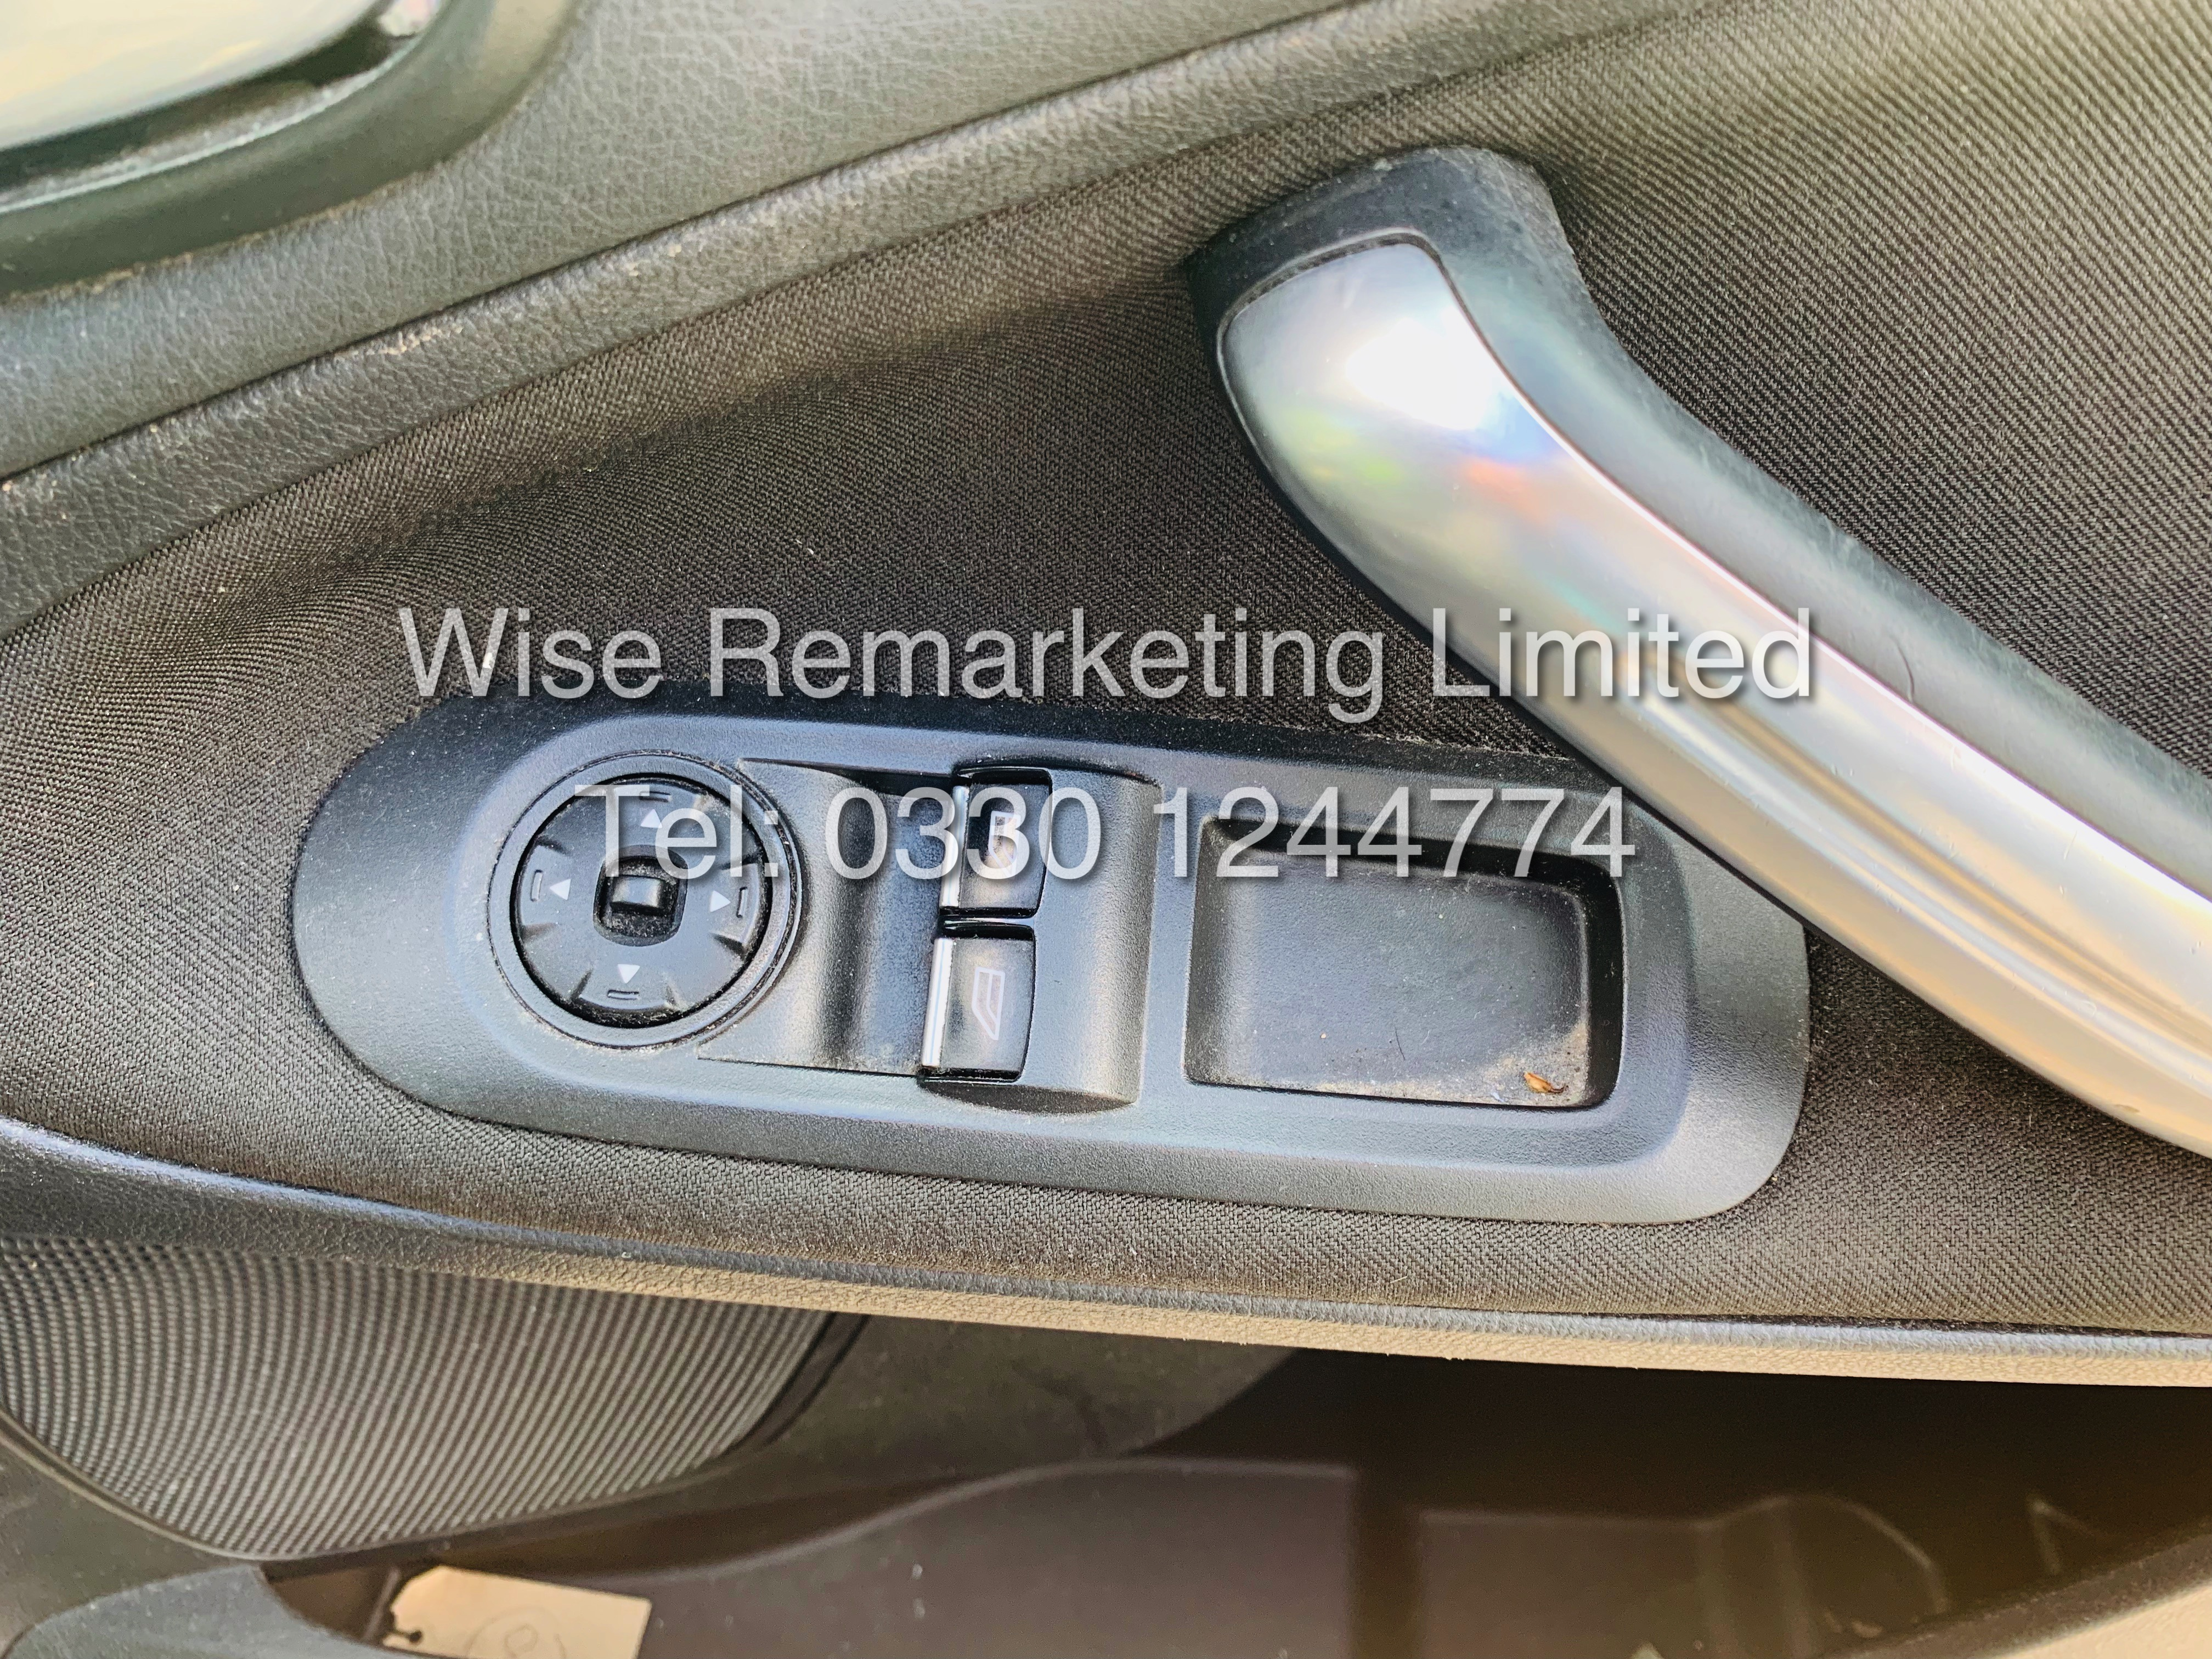 FORD GALAXY ZETEC 2.0L TDCI AUTO 7 SEATER MPV 63 REG *1 OWNER* - Image 14 of 18